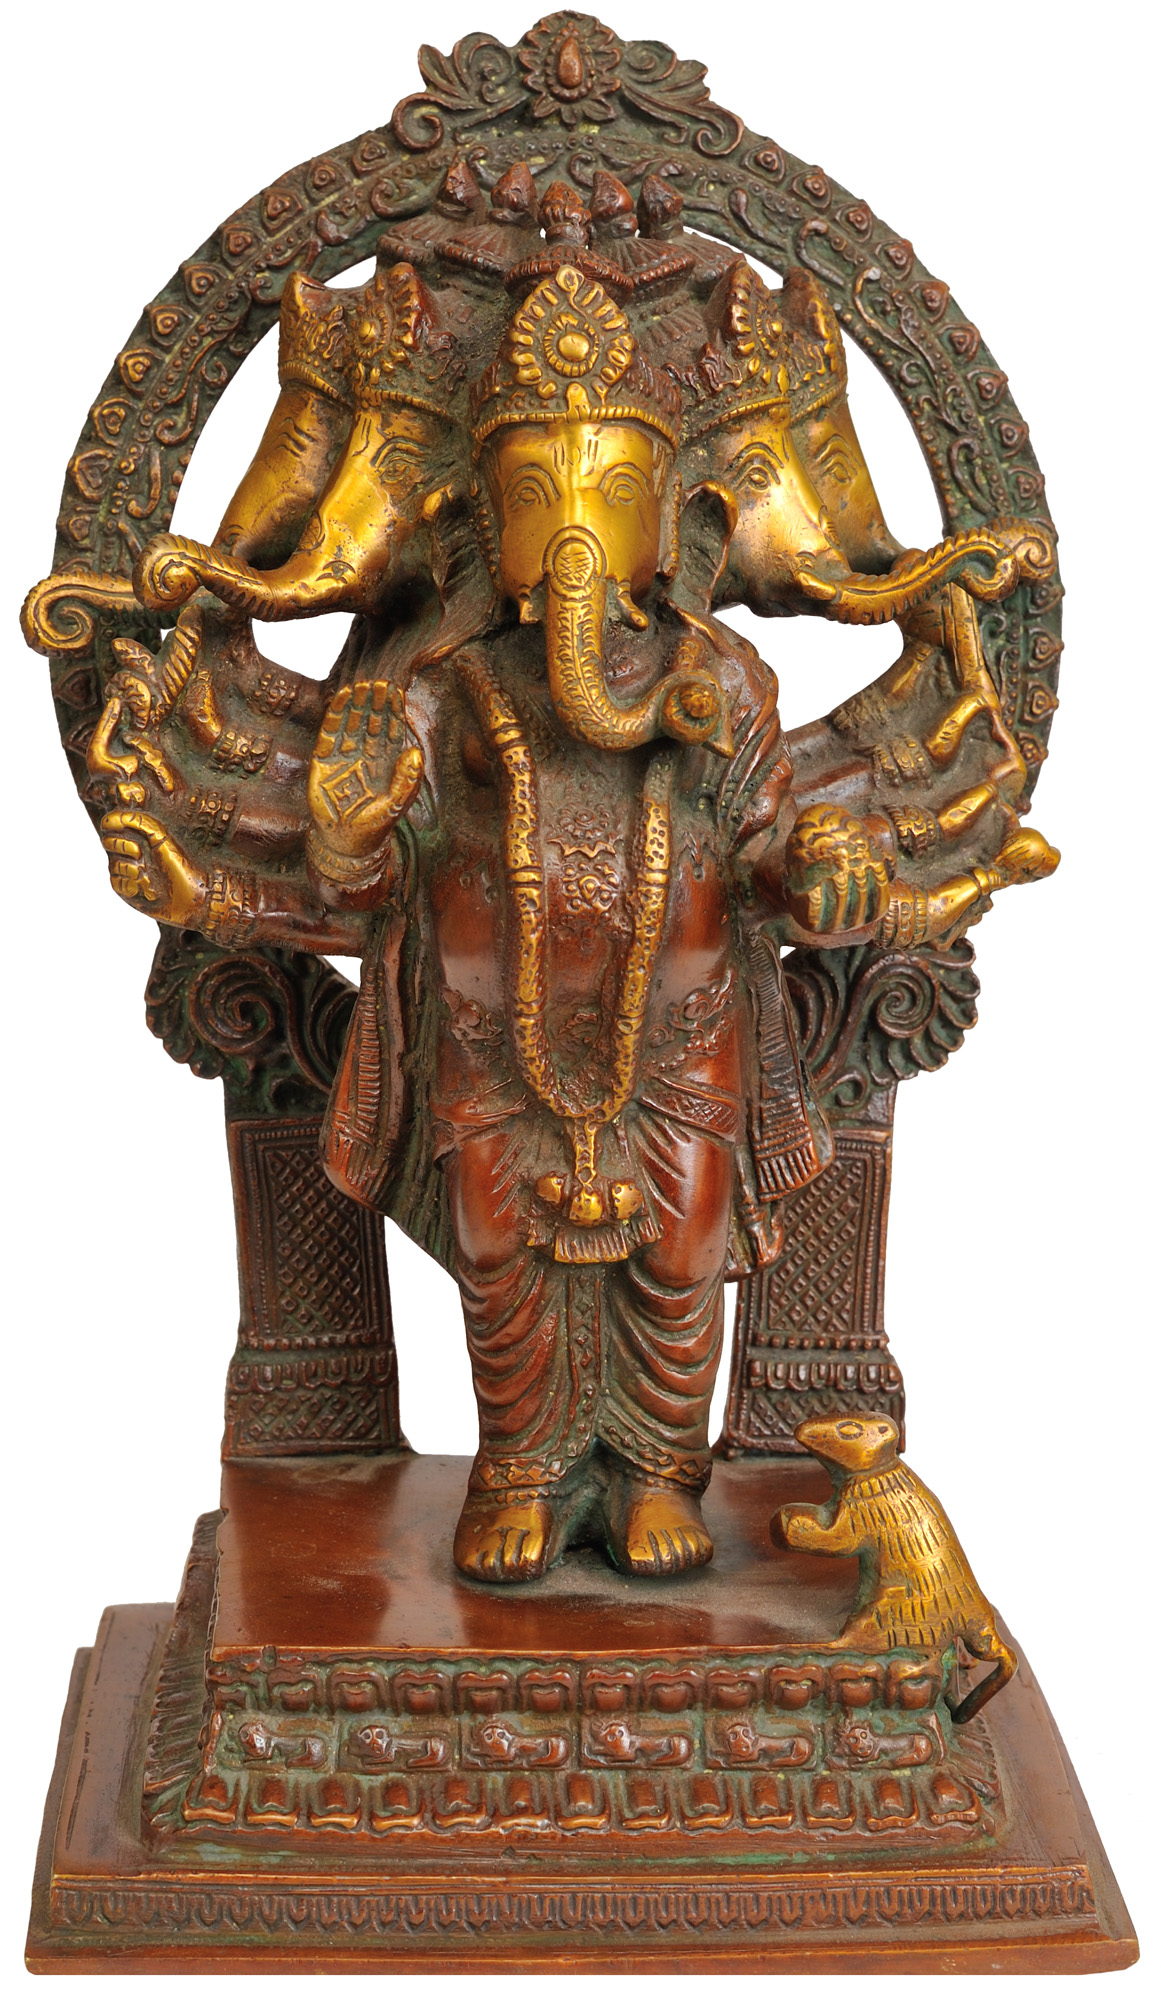 Five Headed Lord Ganesha - photo#38